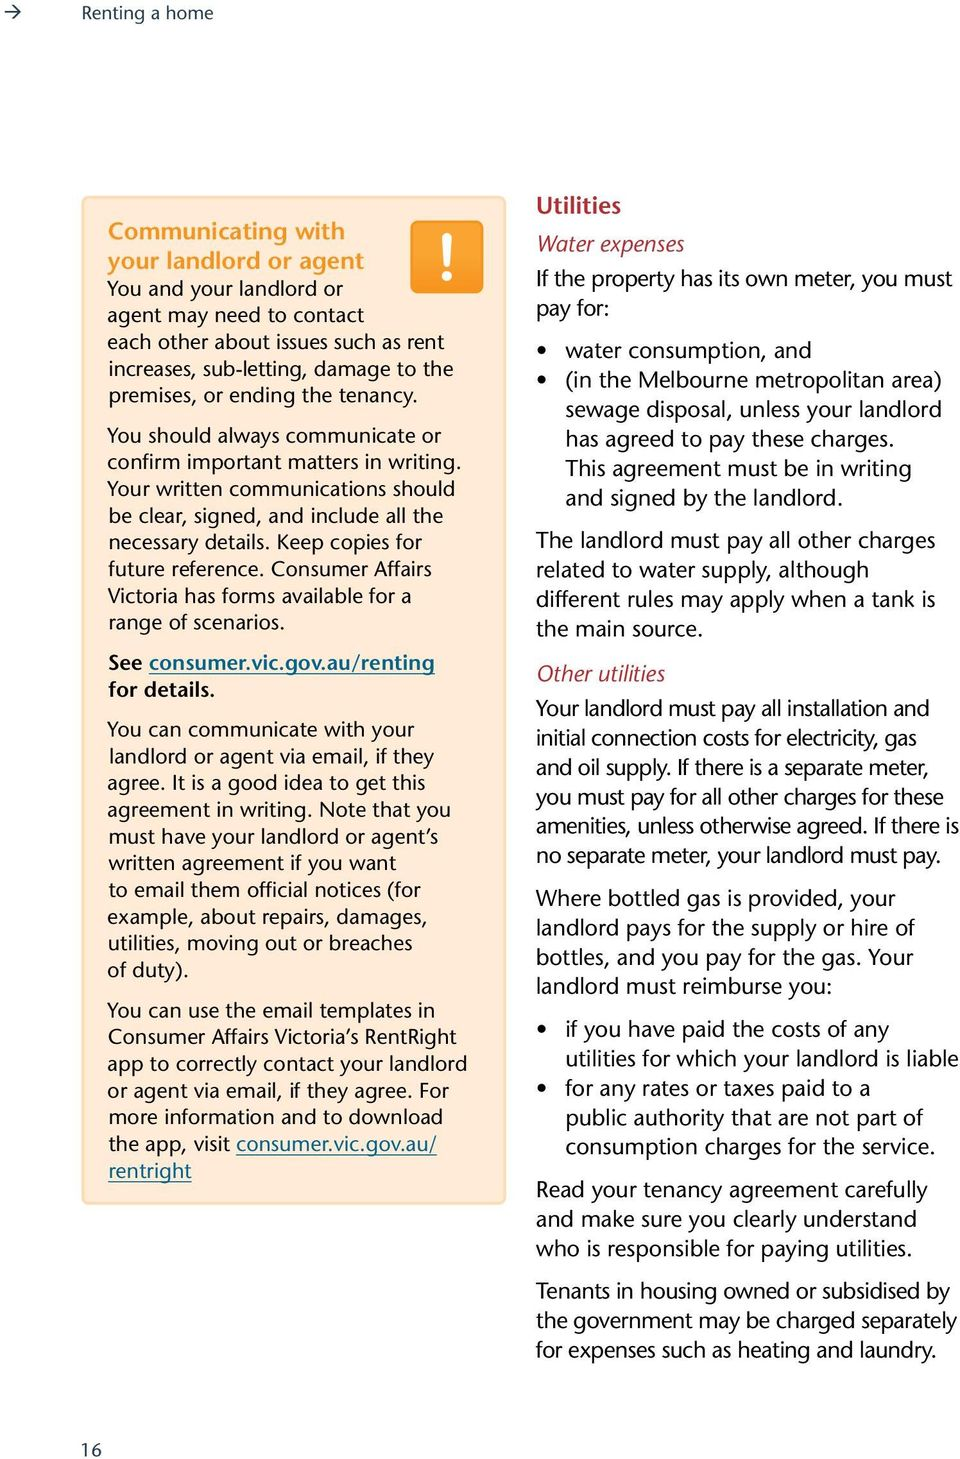 Renting a home  A guide for tenants  consumer vic gov au - PDF